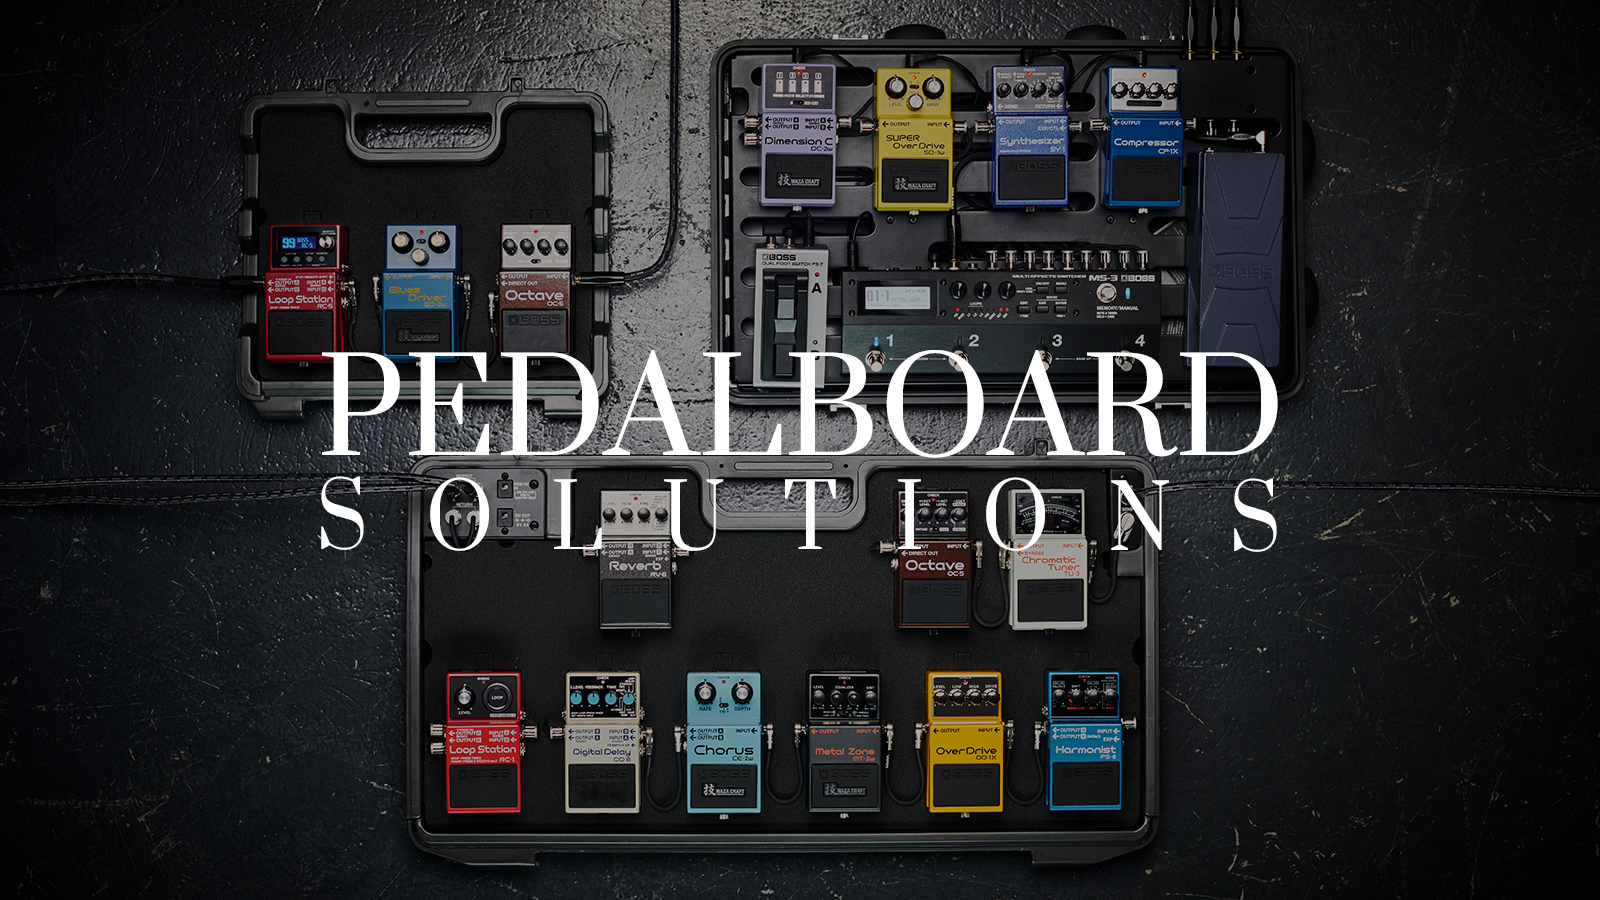 Pedalboard Solution